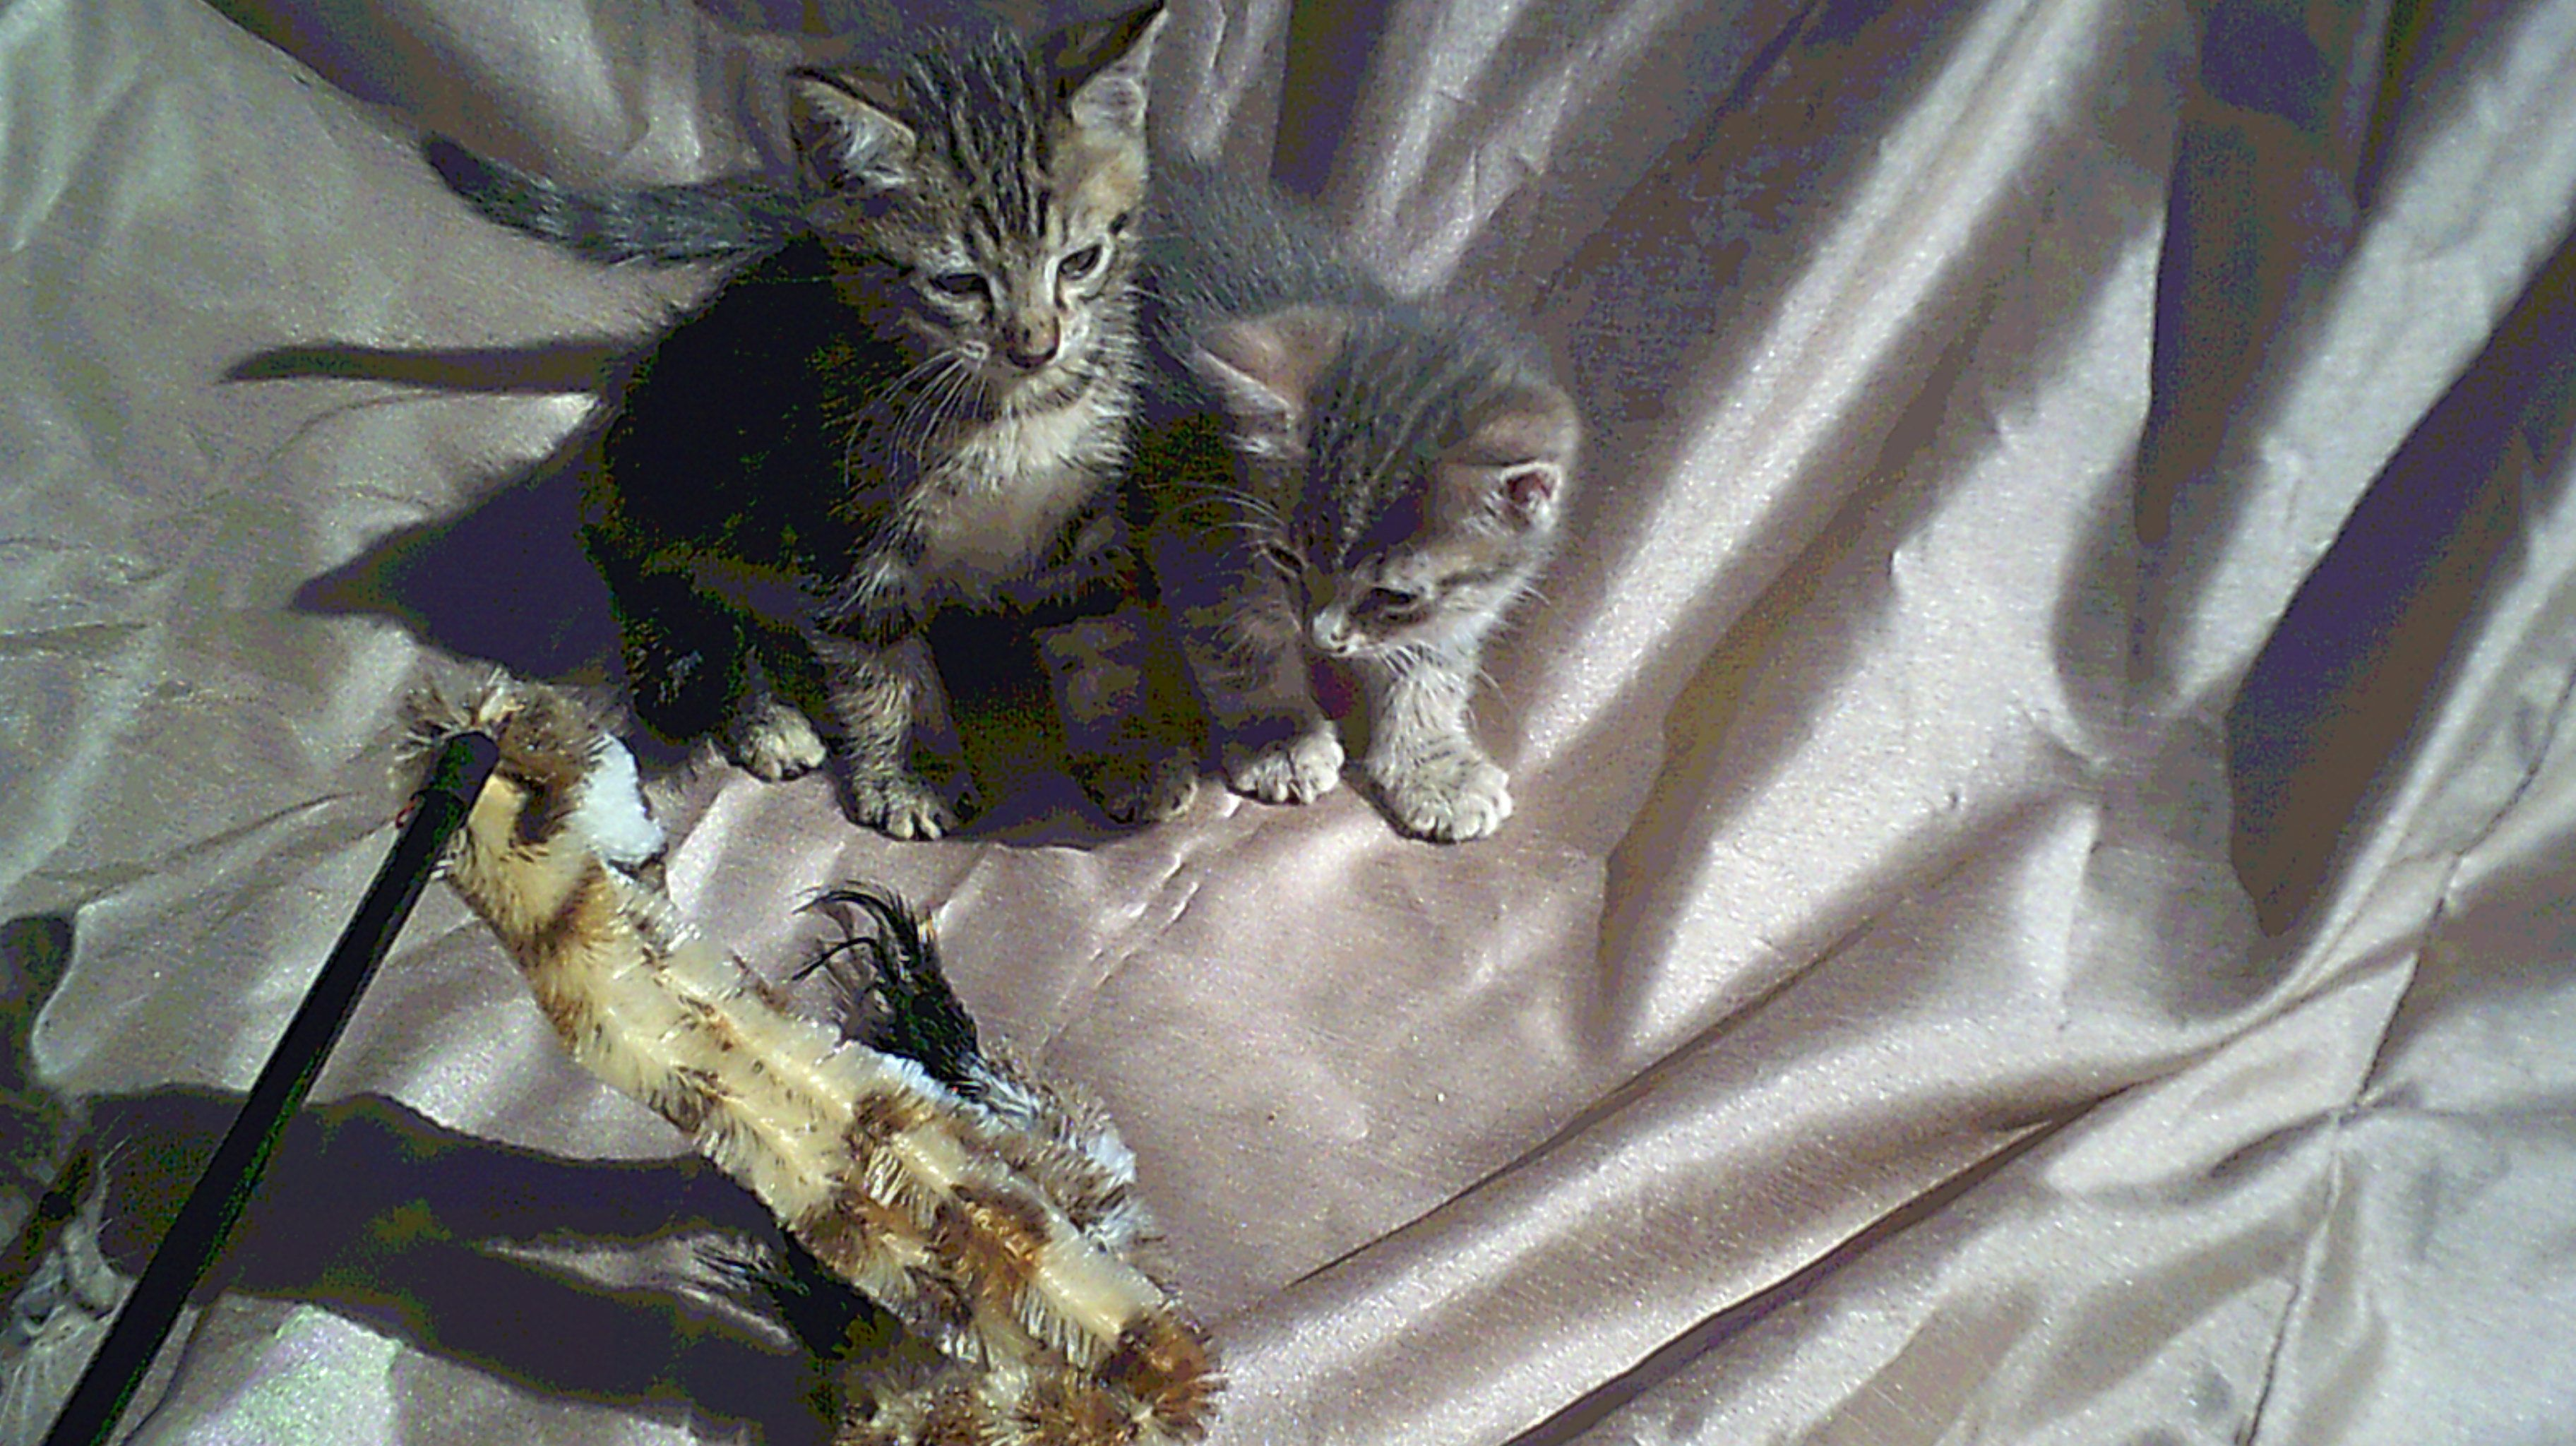 Sorrel Serenity S May 14 2018 Kittens 2 Males 1 Female As They